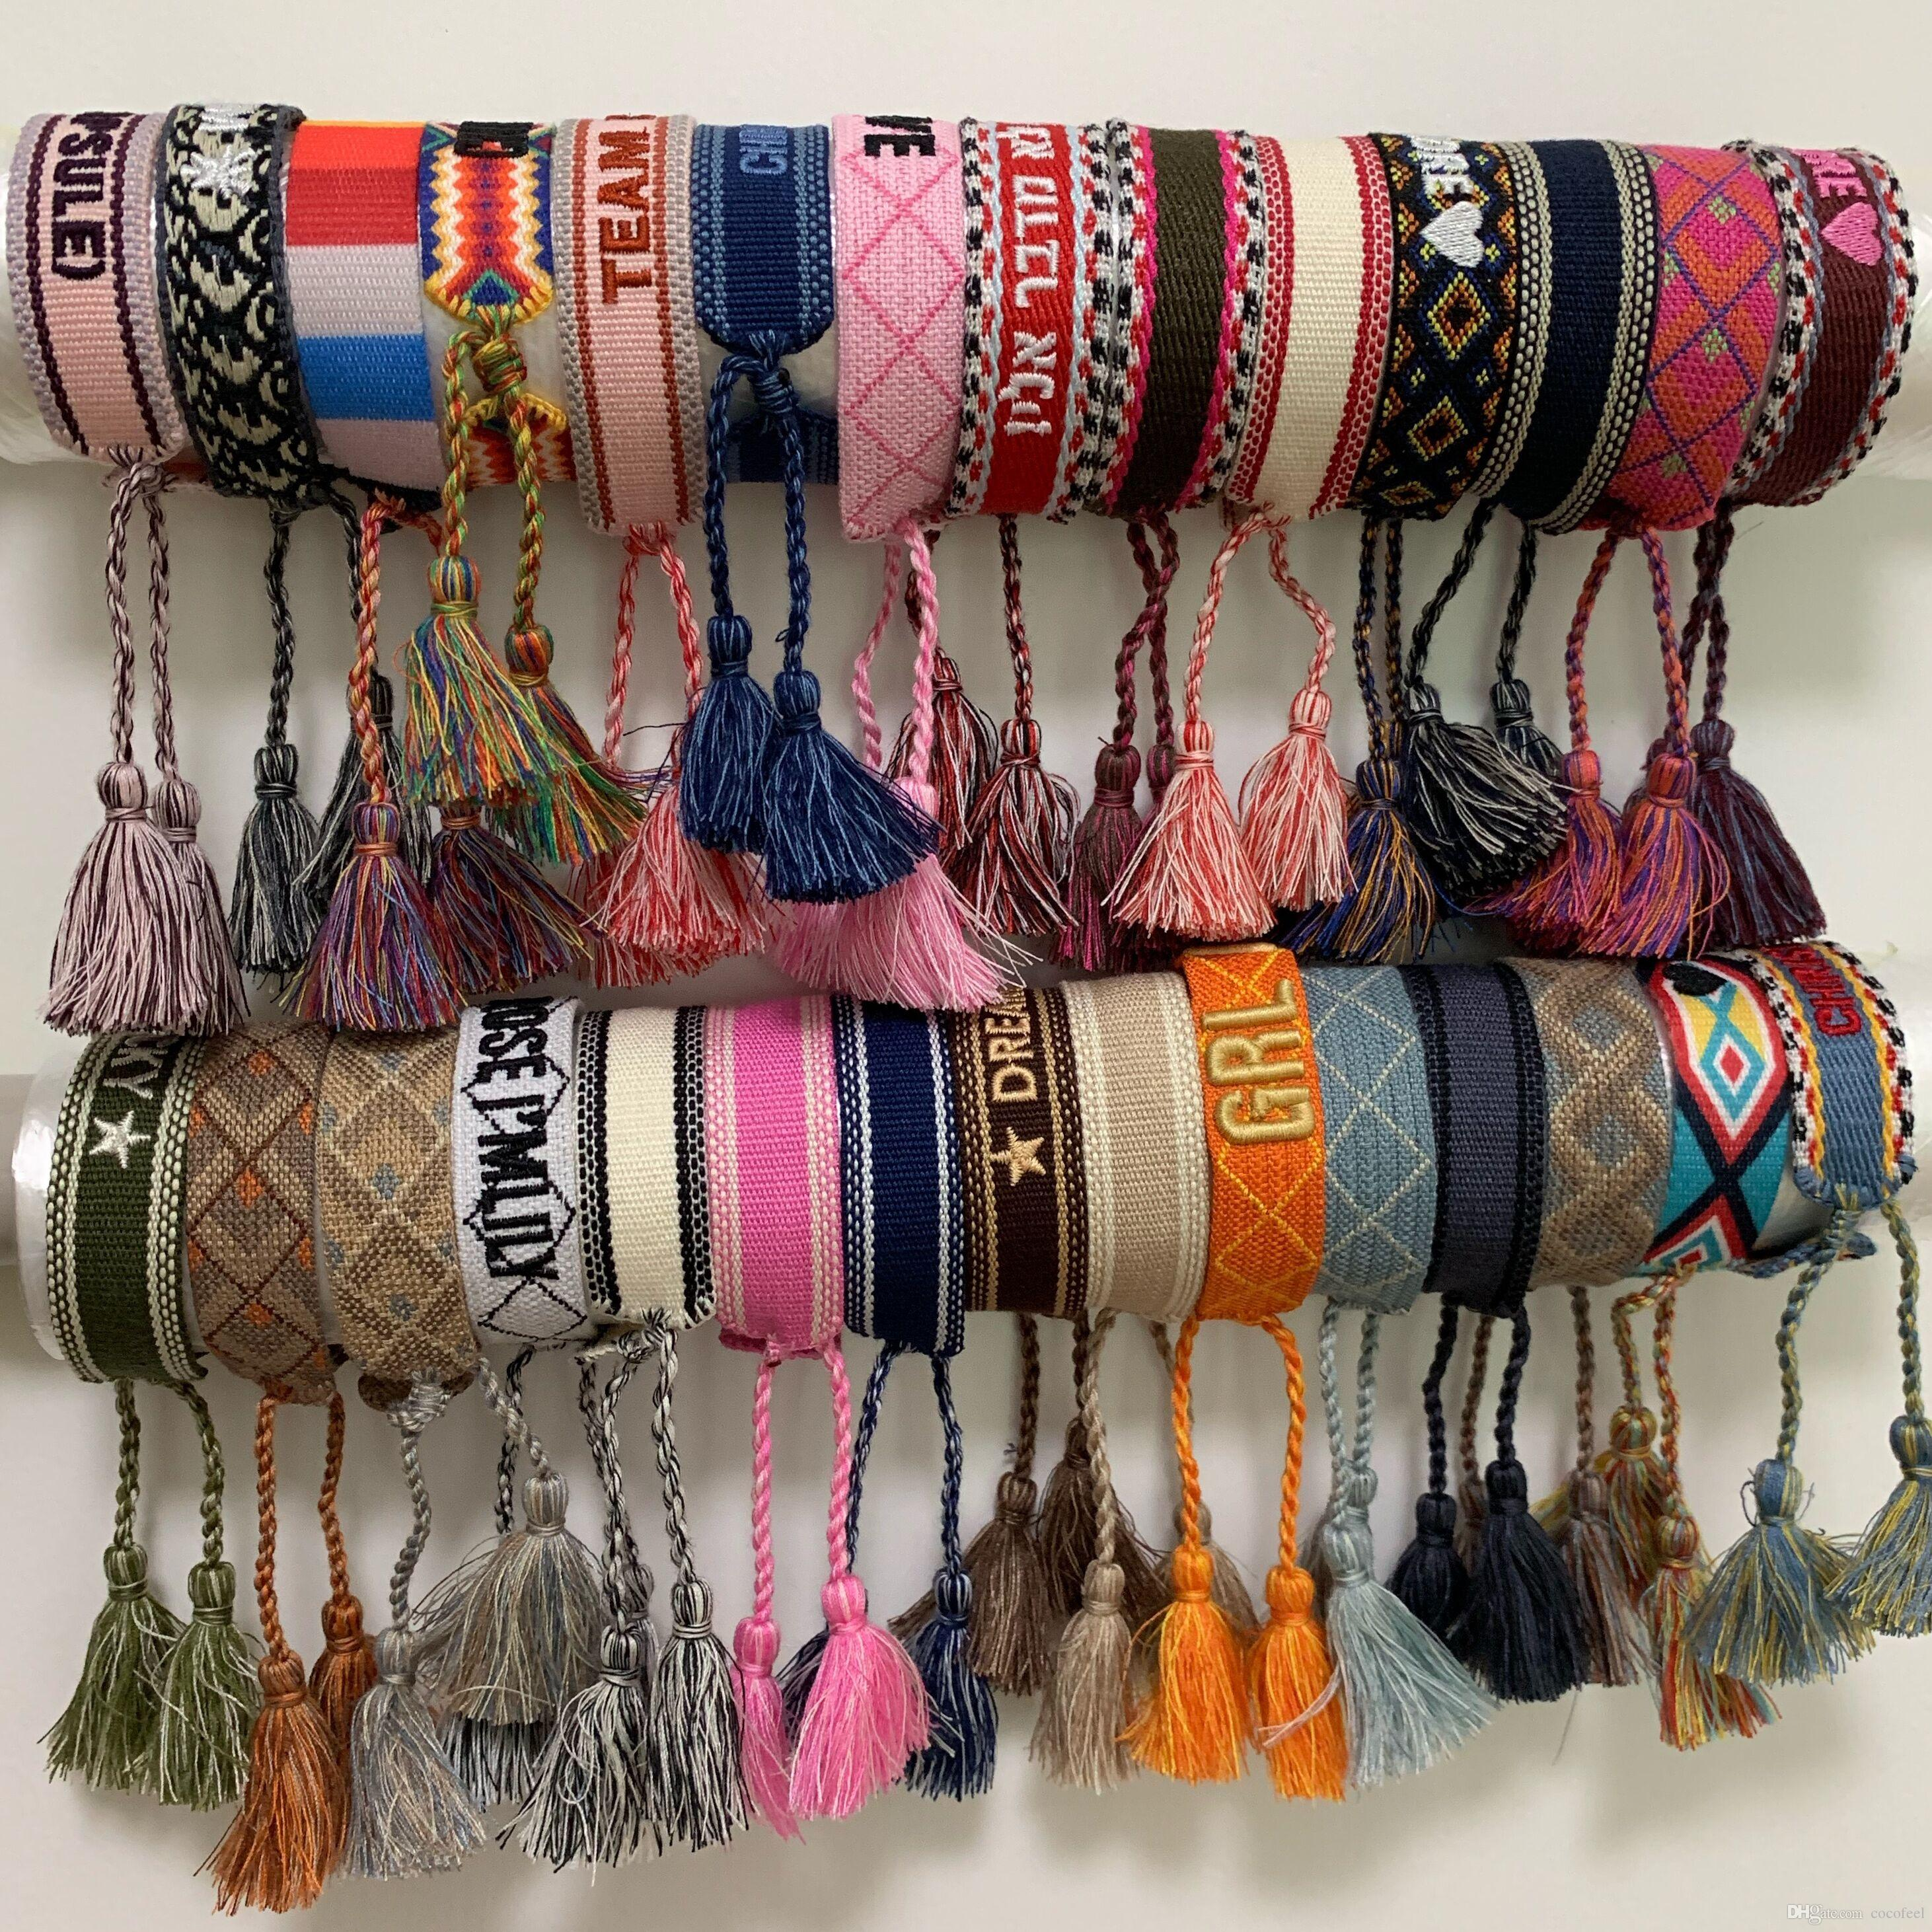 Luxury rope material Embroidery bracelet with sewing words and tassel D brand Woven jewelry Cotton bracelet gift Friendship bracelet